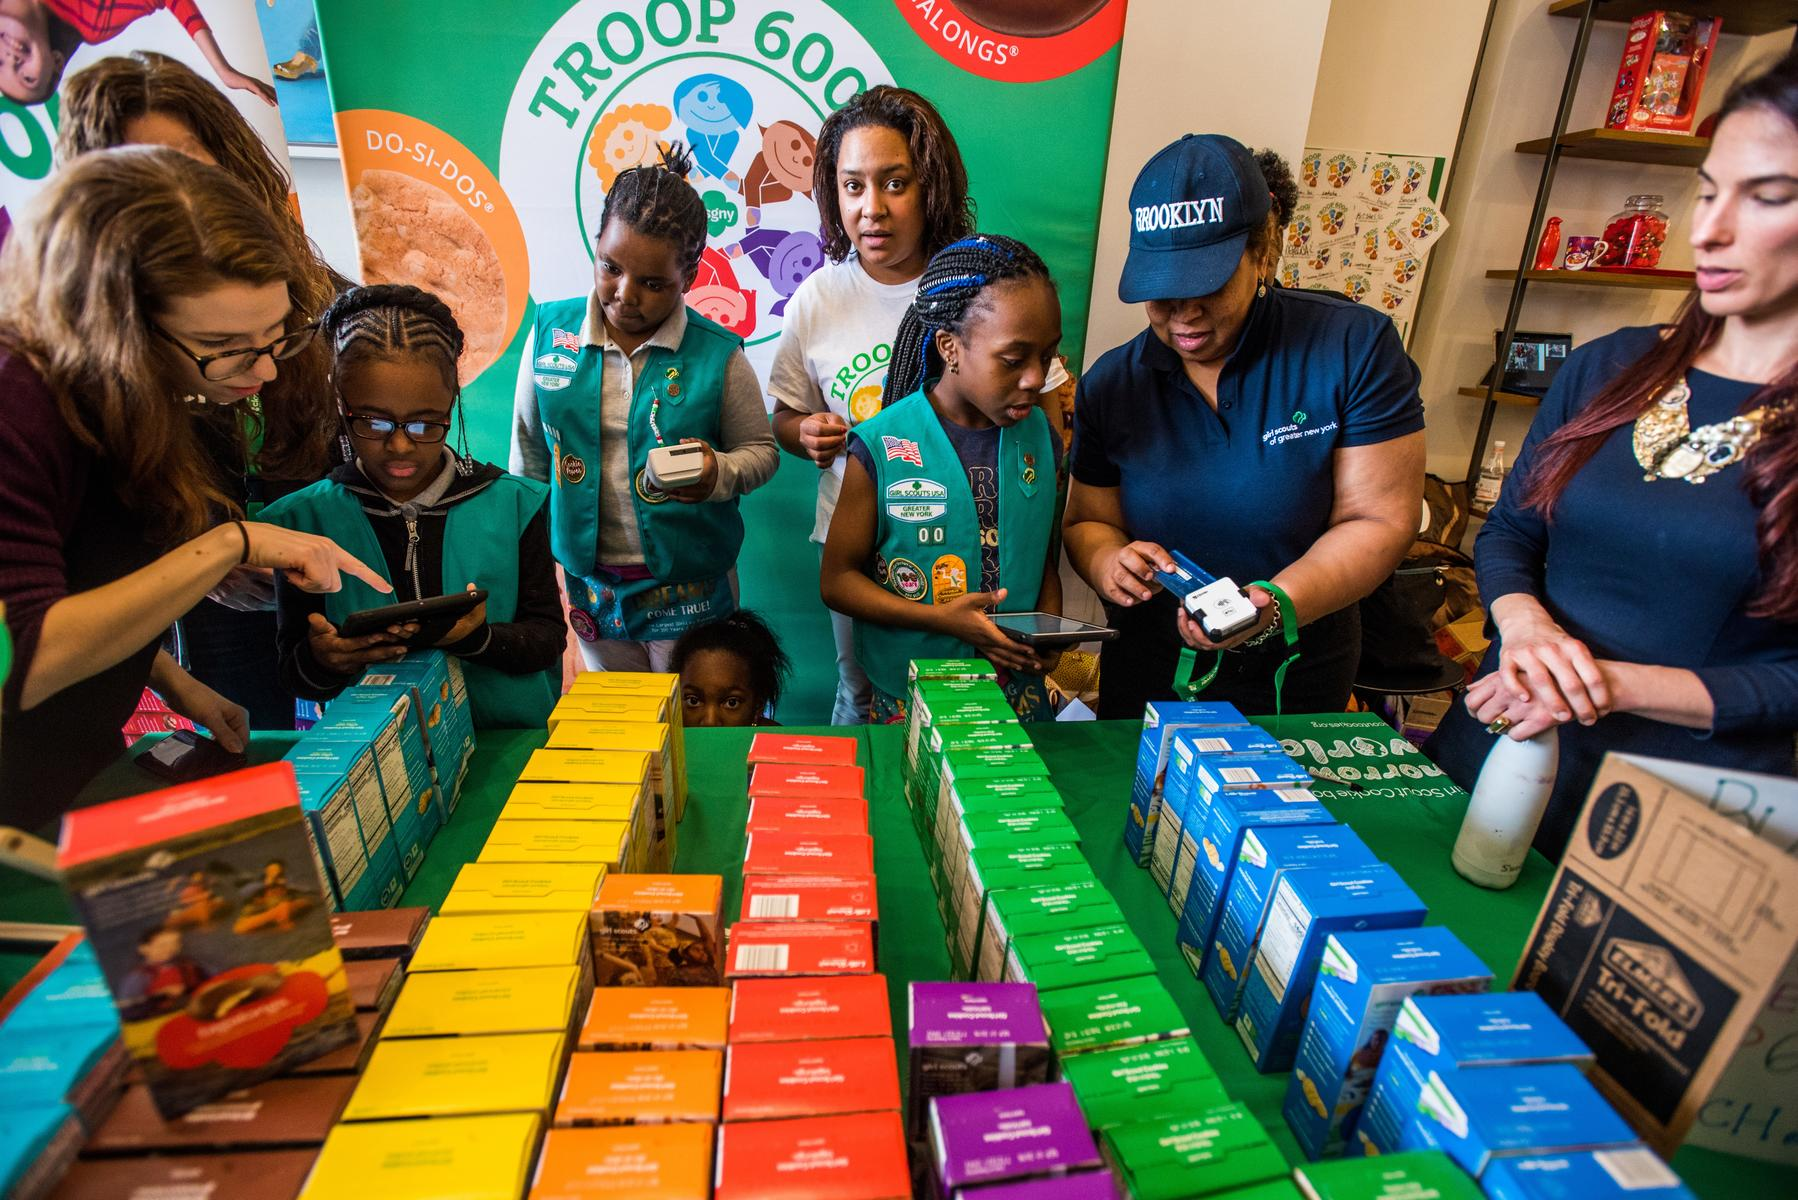 A Girl Scout Troop for Homeless Girls Set Up Shop in NYC With a Big Goal in Mind